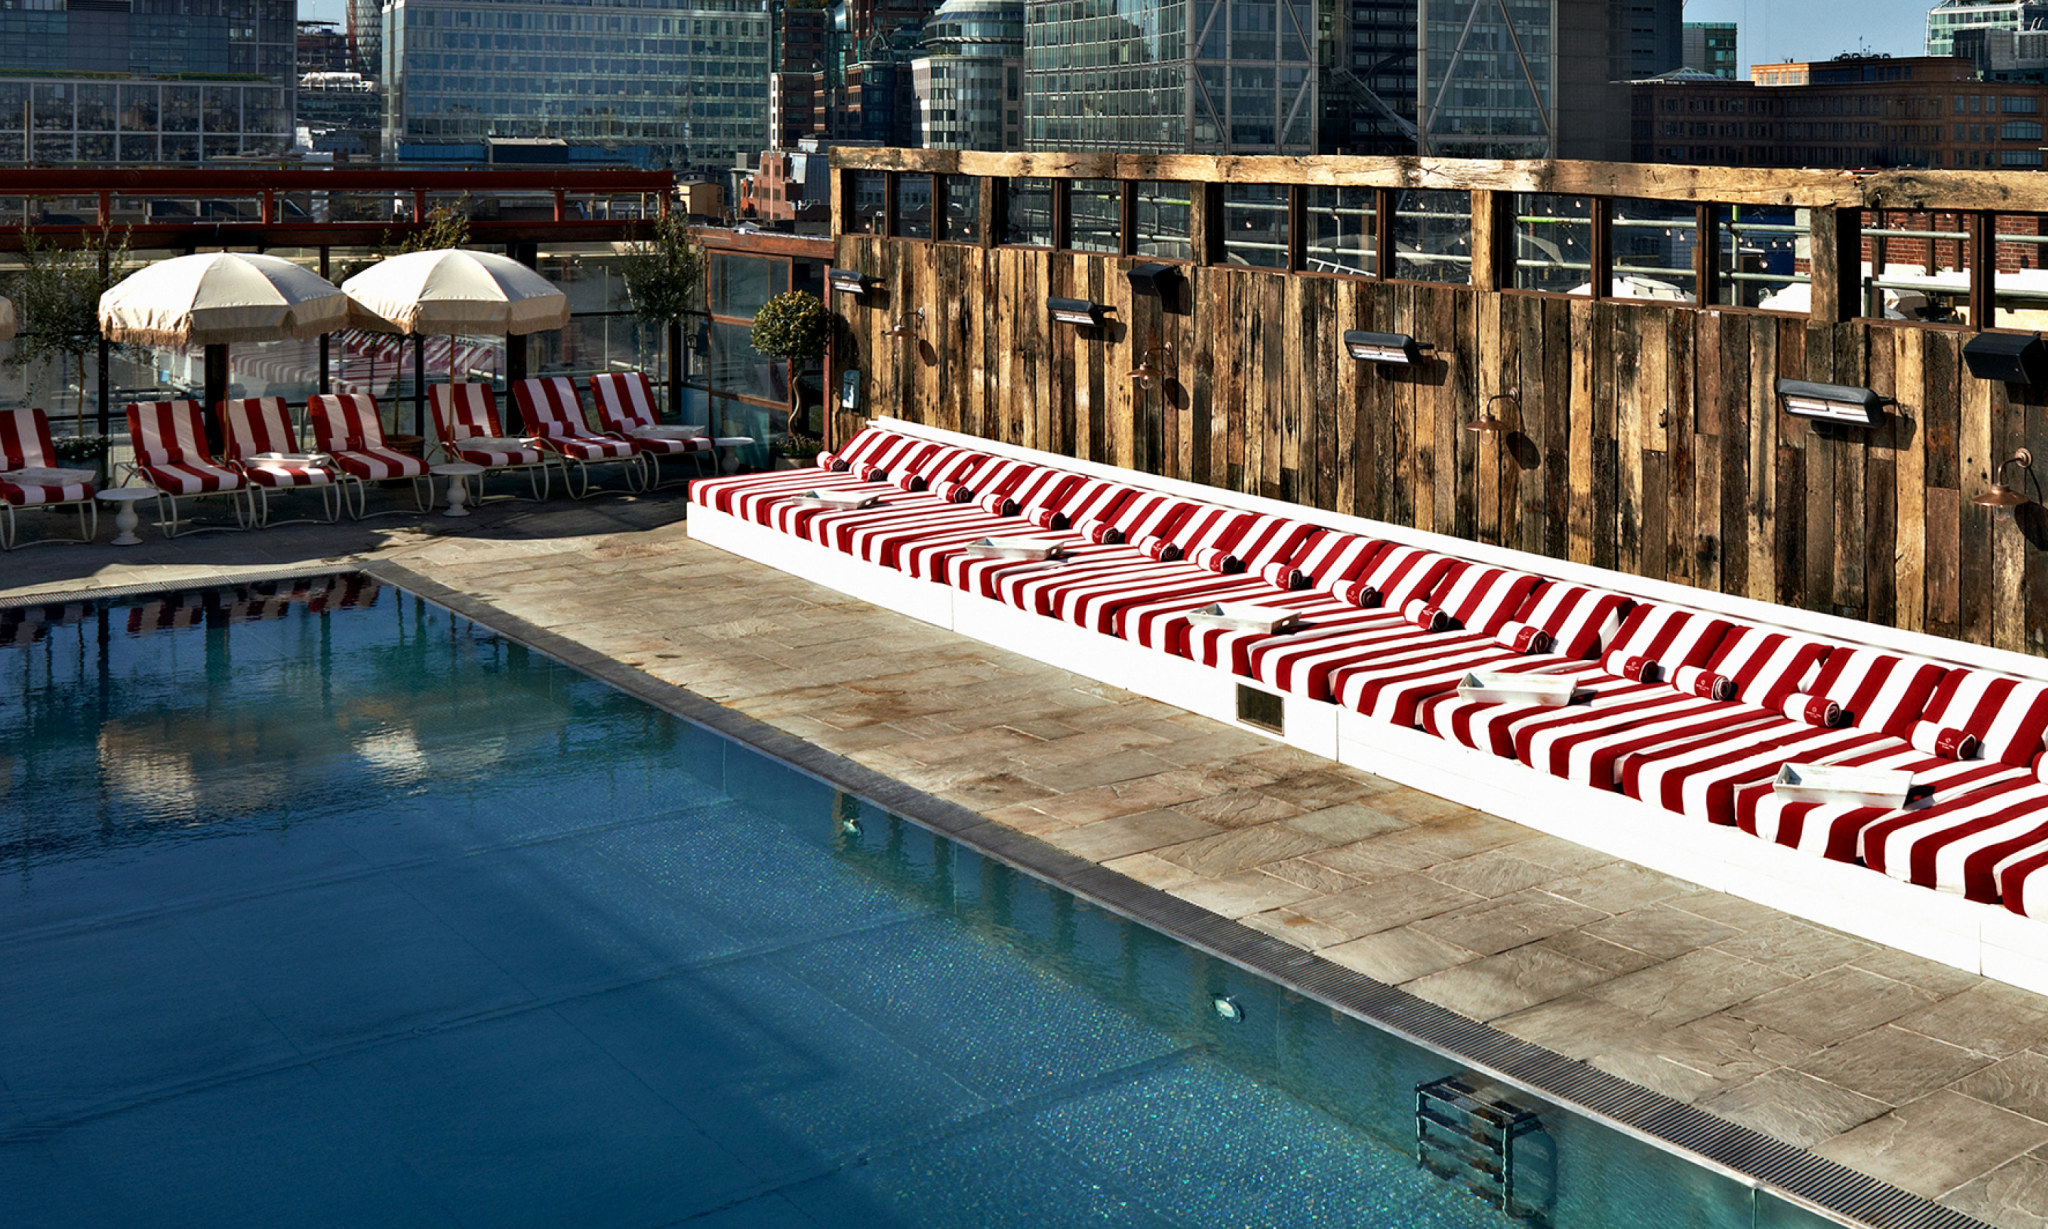 A rooftop pool with red and white striped sun loungers and day beds.